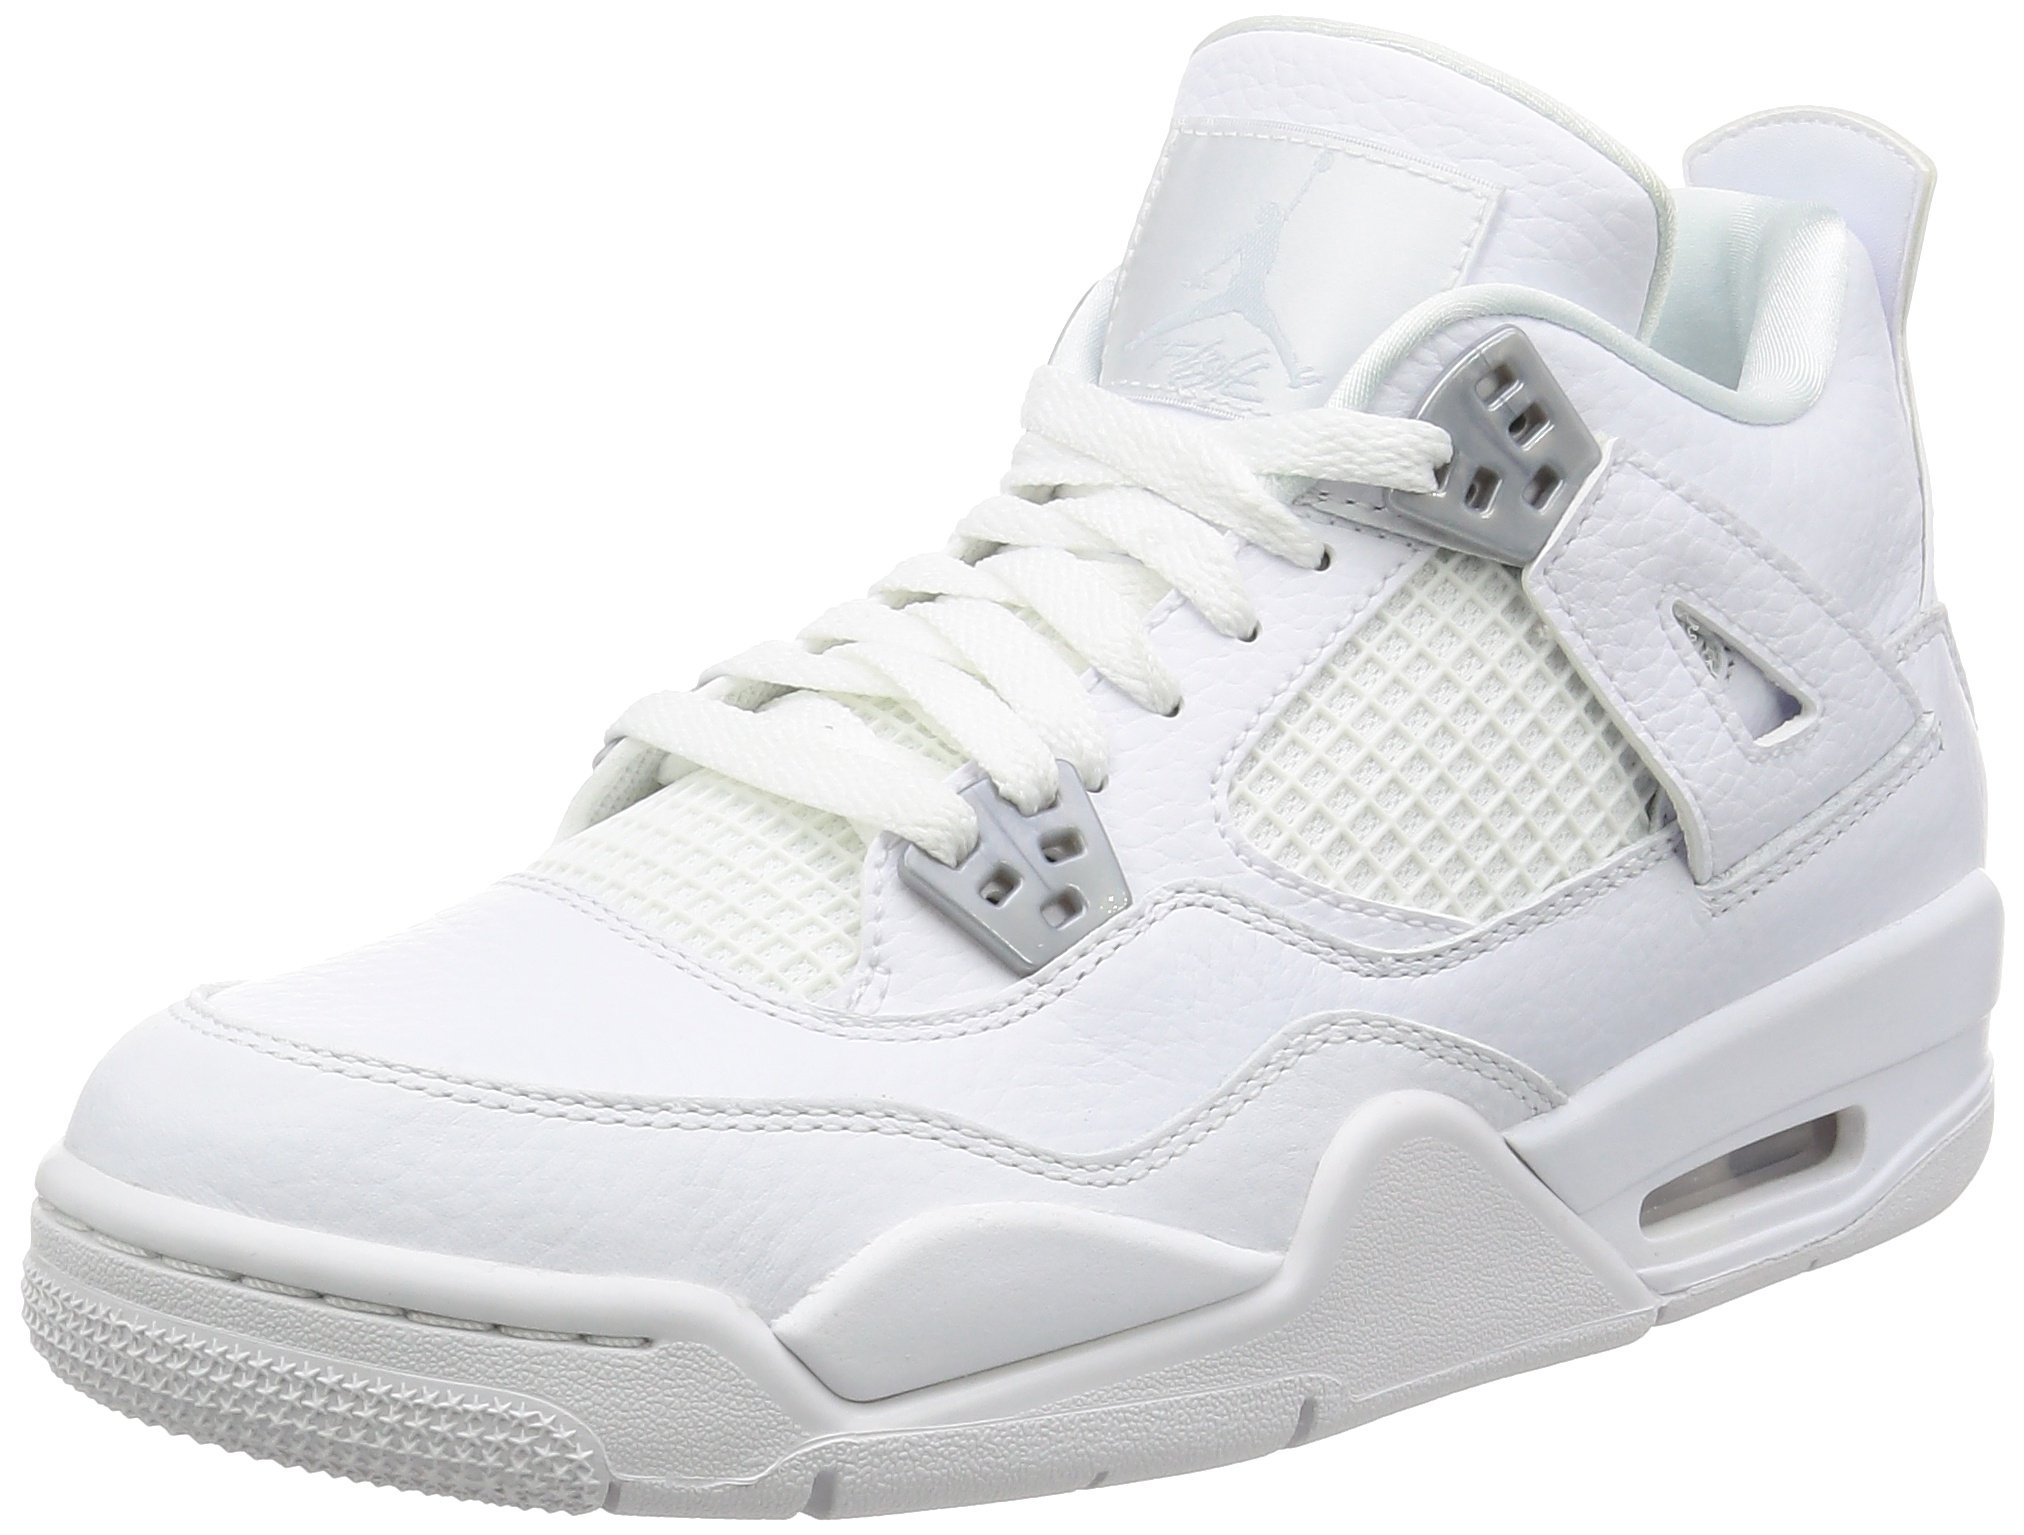 Jordan Retro 4'' Pure Money White/Metallic Silver (Big Kid) (7 M US Big Kid) by Jordan